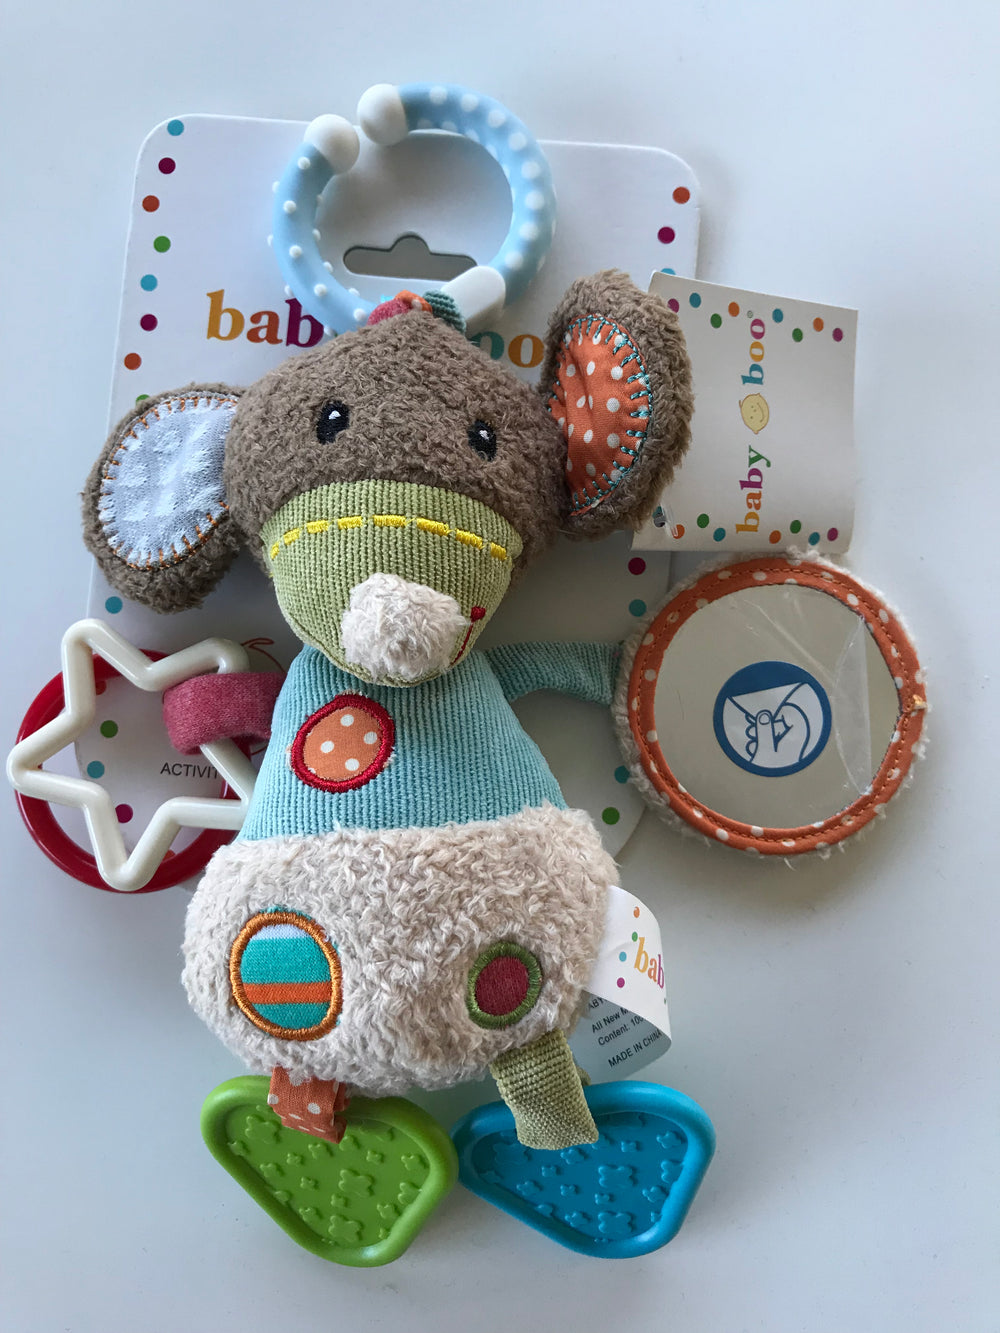 Baby Boo - Animal Rattles